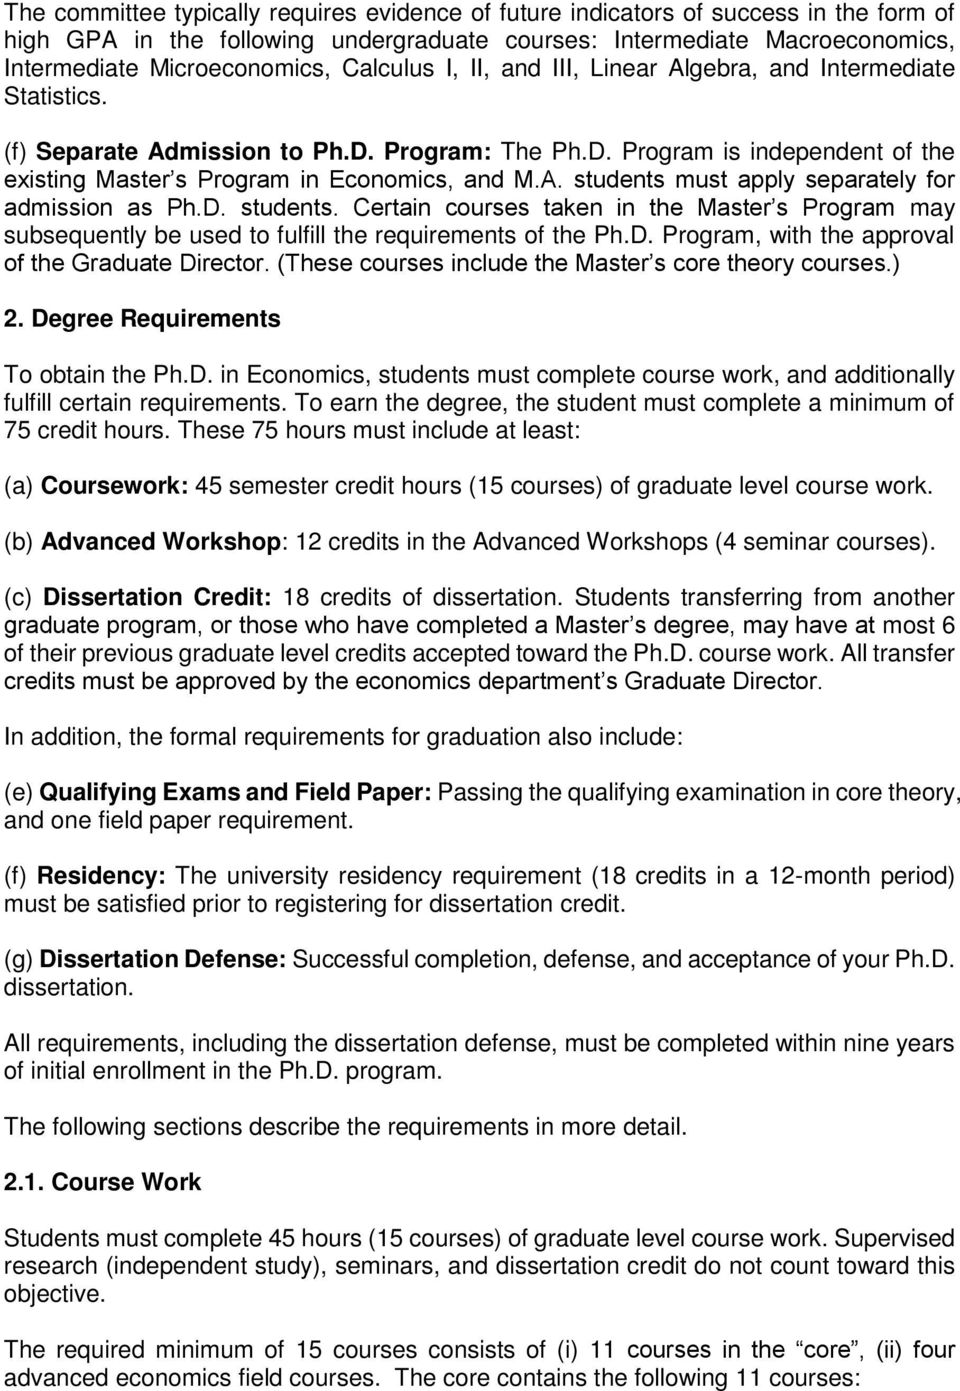 D. students. Certain courses taken in the Master s Program may subsequently be used to fulfill the requirements of the Ph.D. Program, with the approval of the Graduate Director.